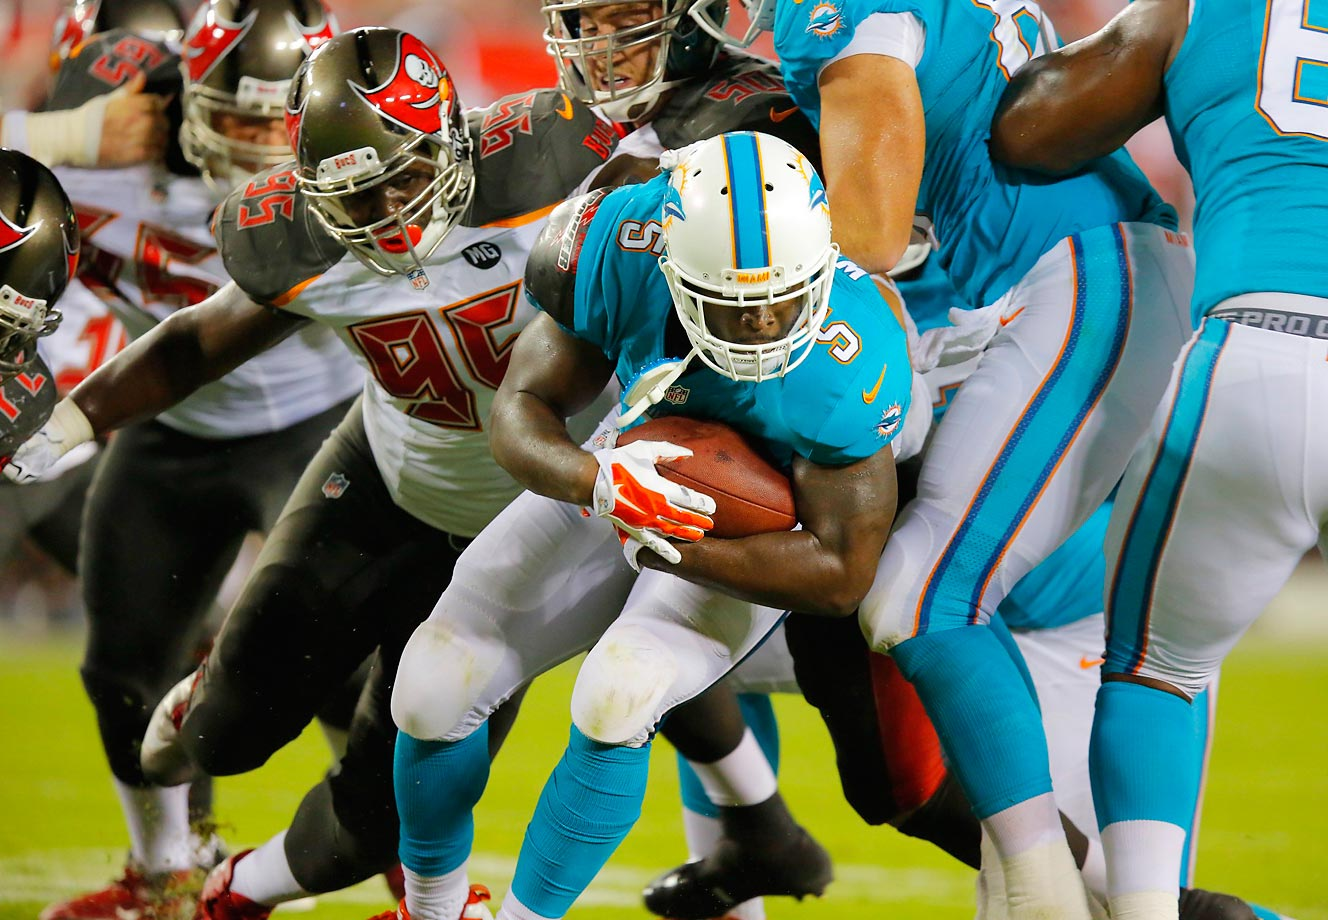 Miami's Damien Williams, an undrafted free-agent running back, maneuvers past Euclid Cummings of the Bucs during both team's second preseason game.